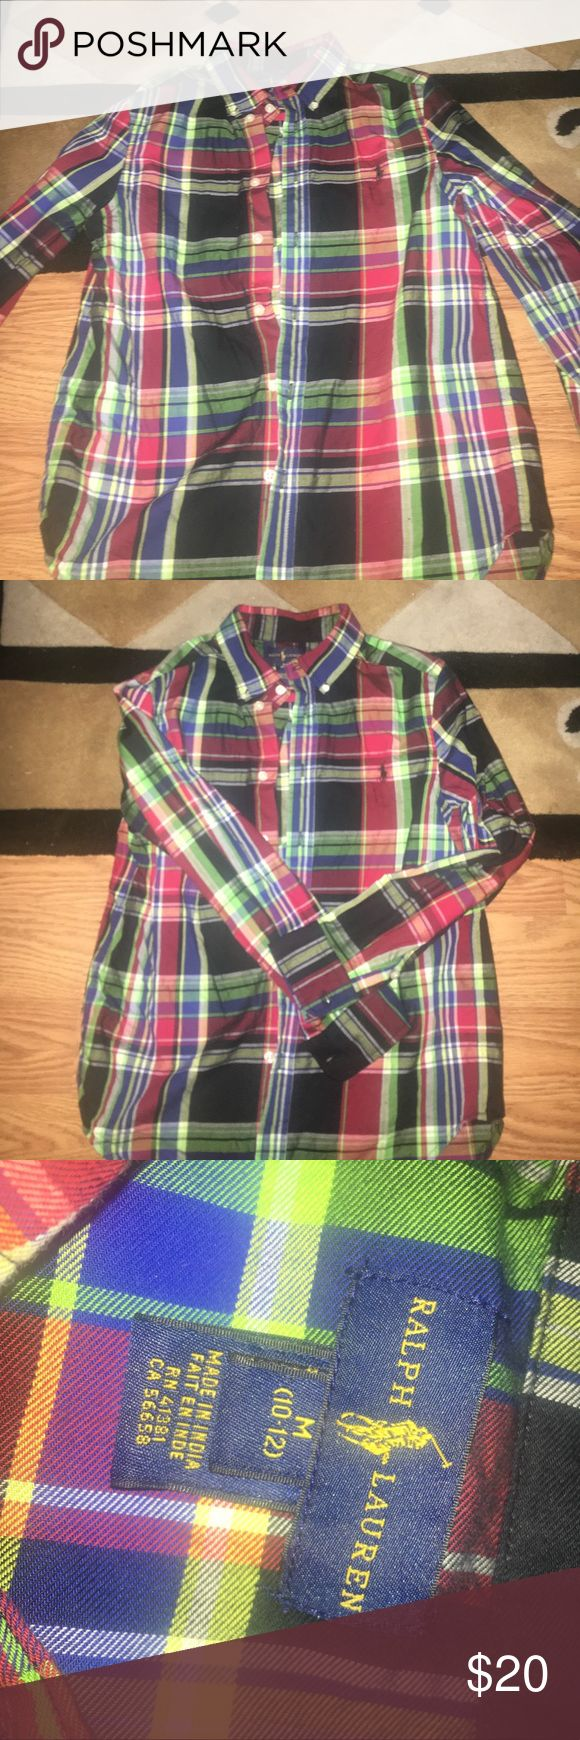 Polo Ralf Lauren boys shirt Plaid medium 10-12 boys Polo long sleeve boys dress shirt. Onlyhas been one time. In perfect condition Polo by Ralph Lauren Shirts & Tops Polos